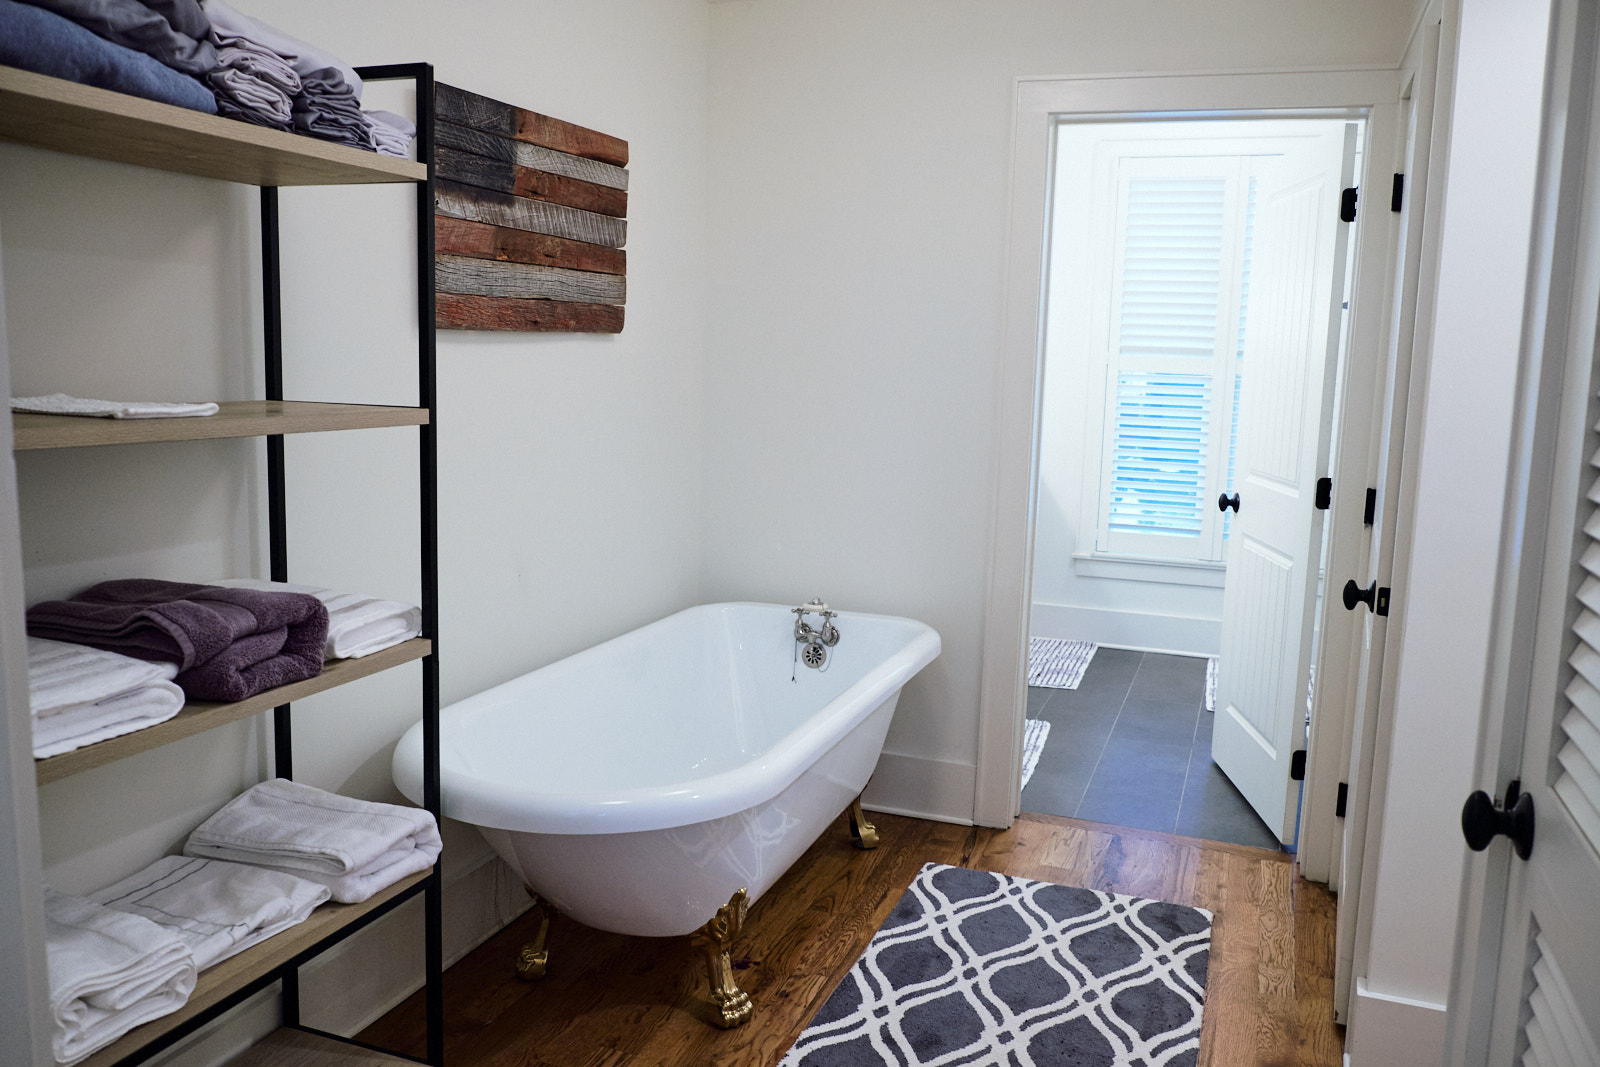 clawfoot bathtub Product Photography Knoxville